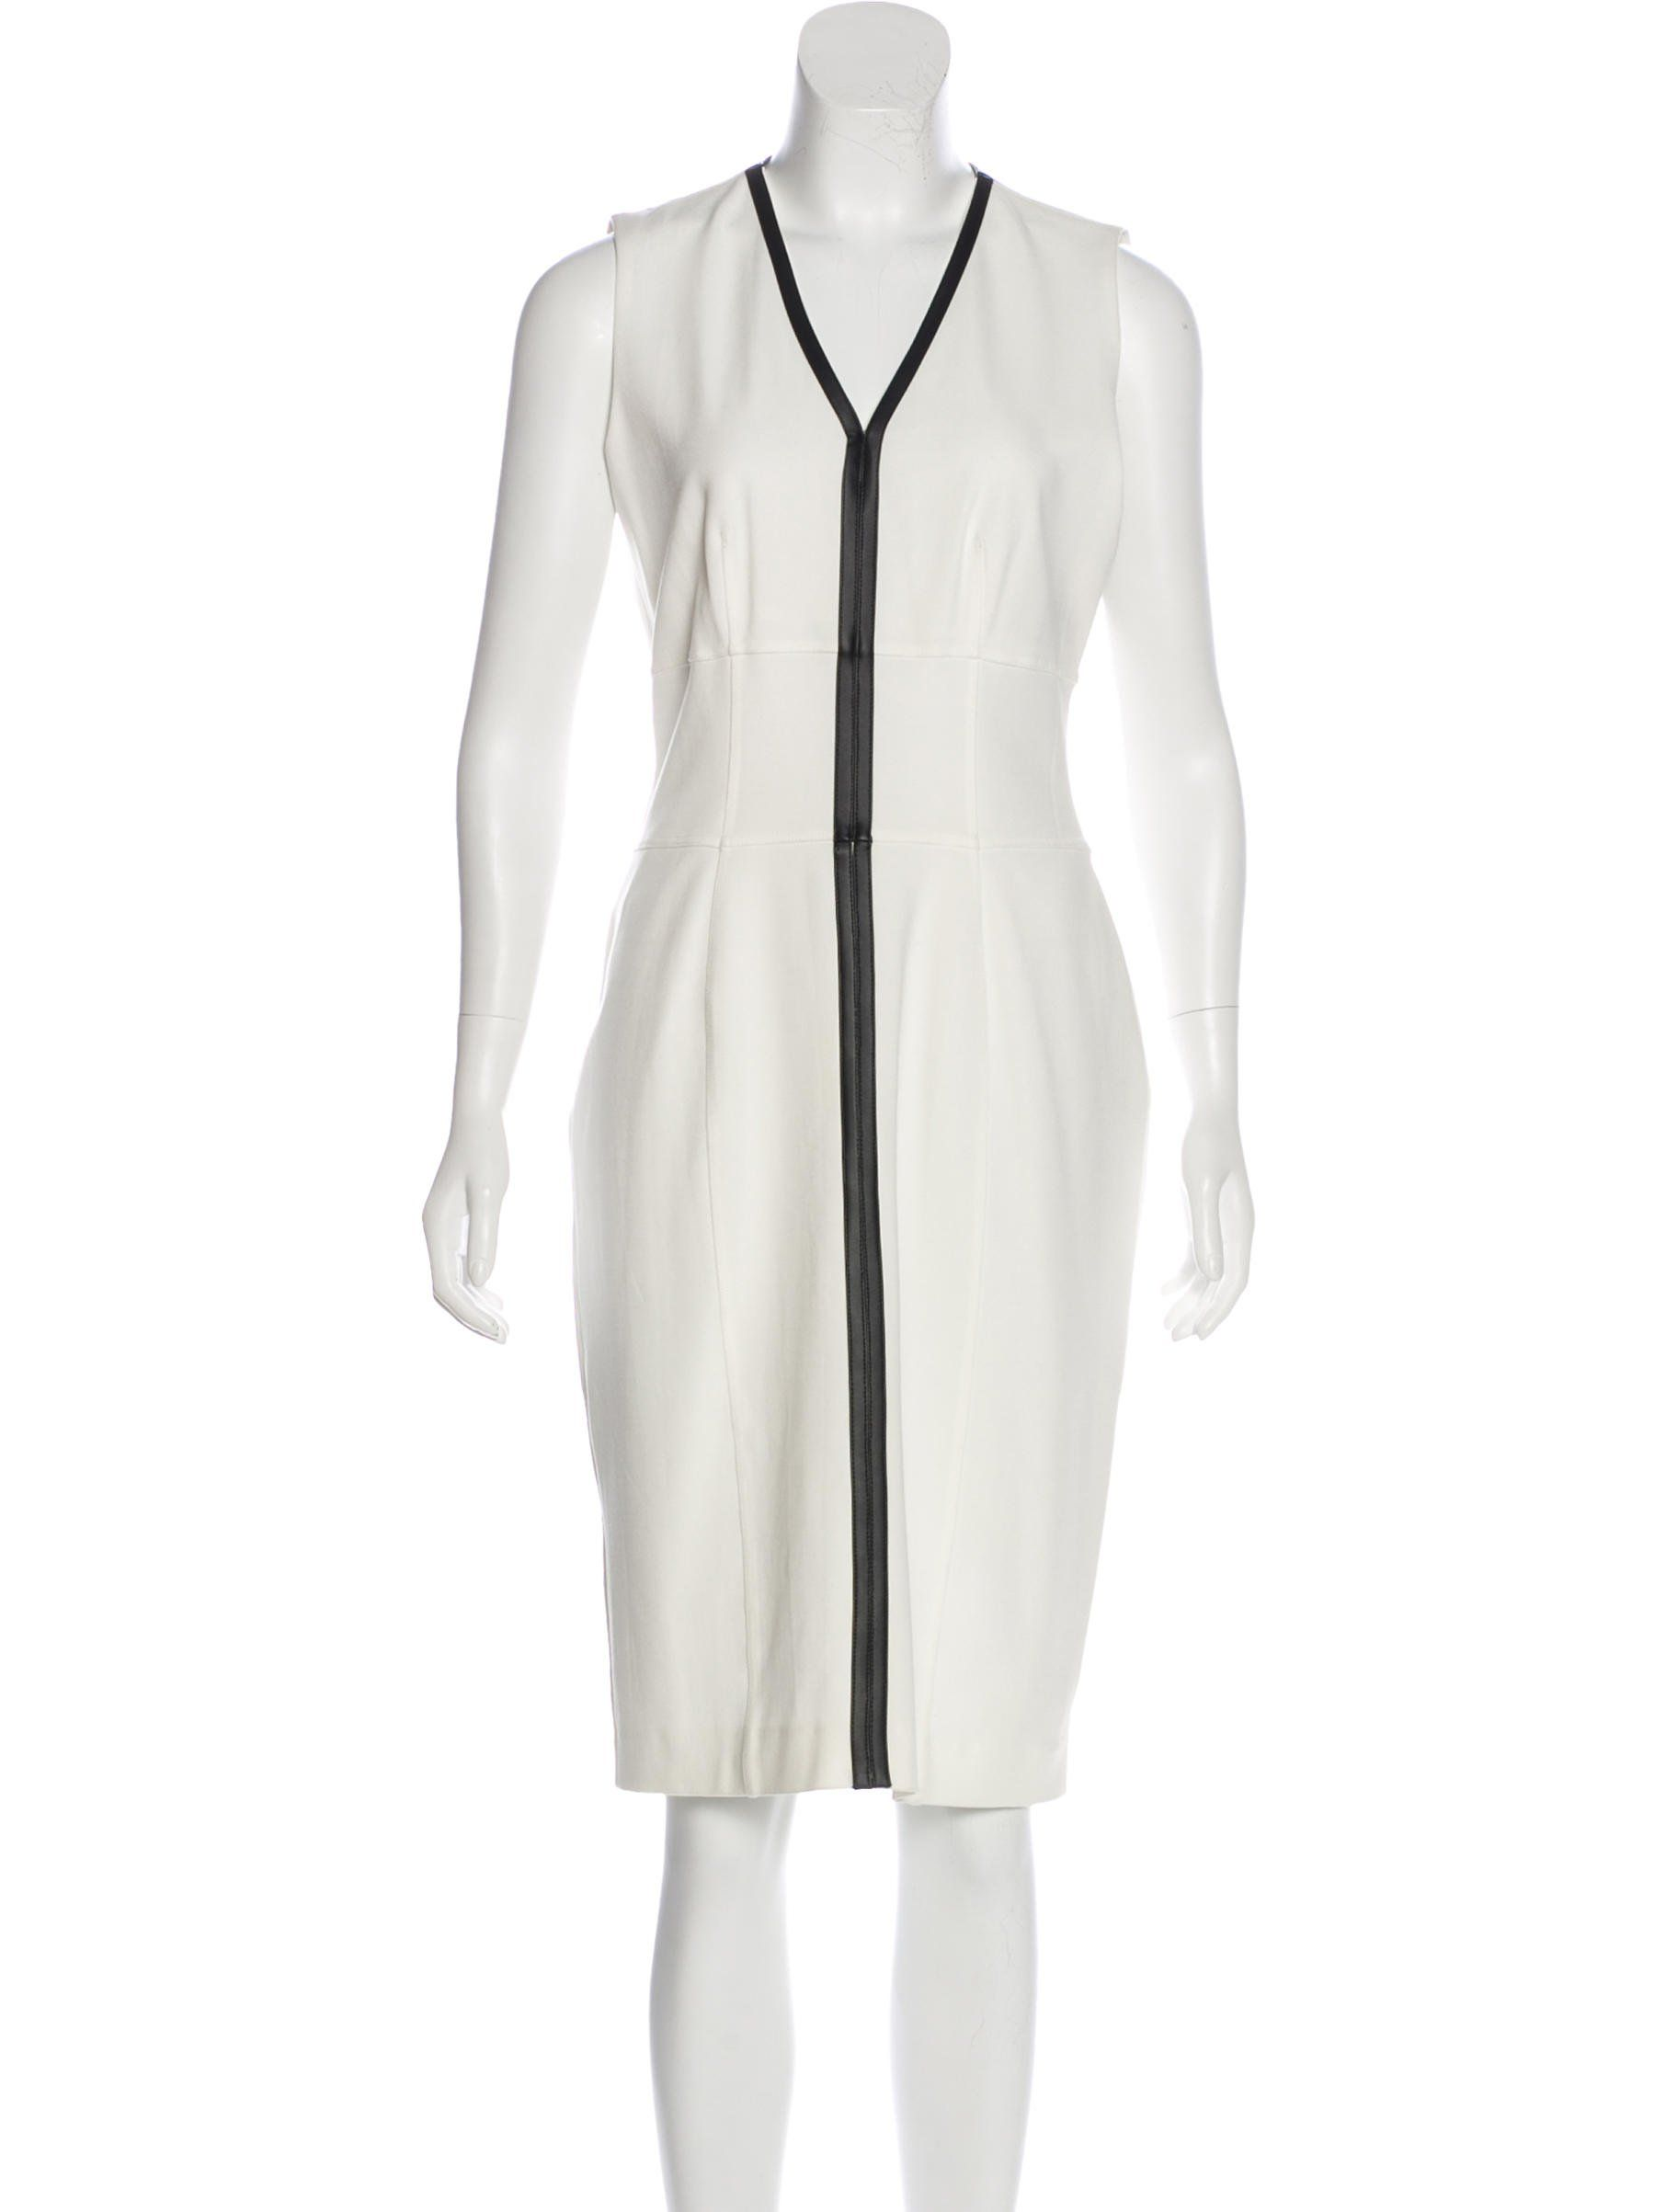 White Burberry London Sleeveless Midi Dress With V Neck Featuring Faux Leather Trim Paneling And Exposed Zip Closure Midi Dress Sleeveless Midi Dress Clothes [ 2406 x 1824 Pixel ]